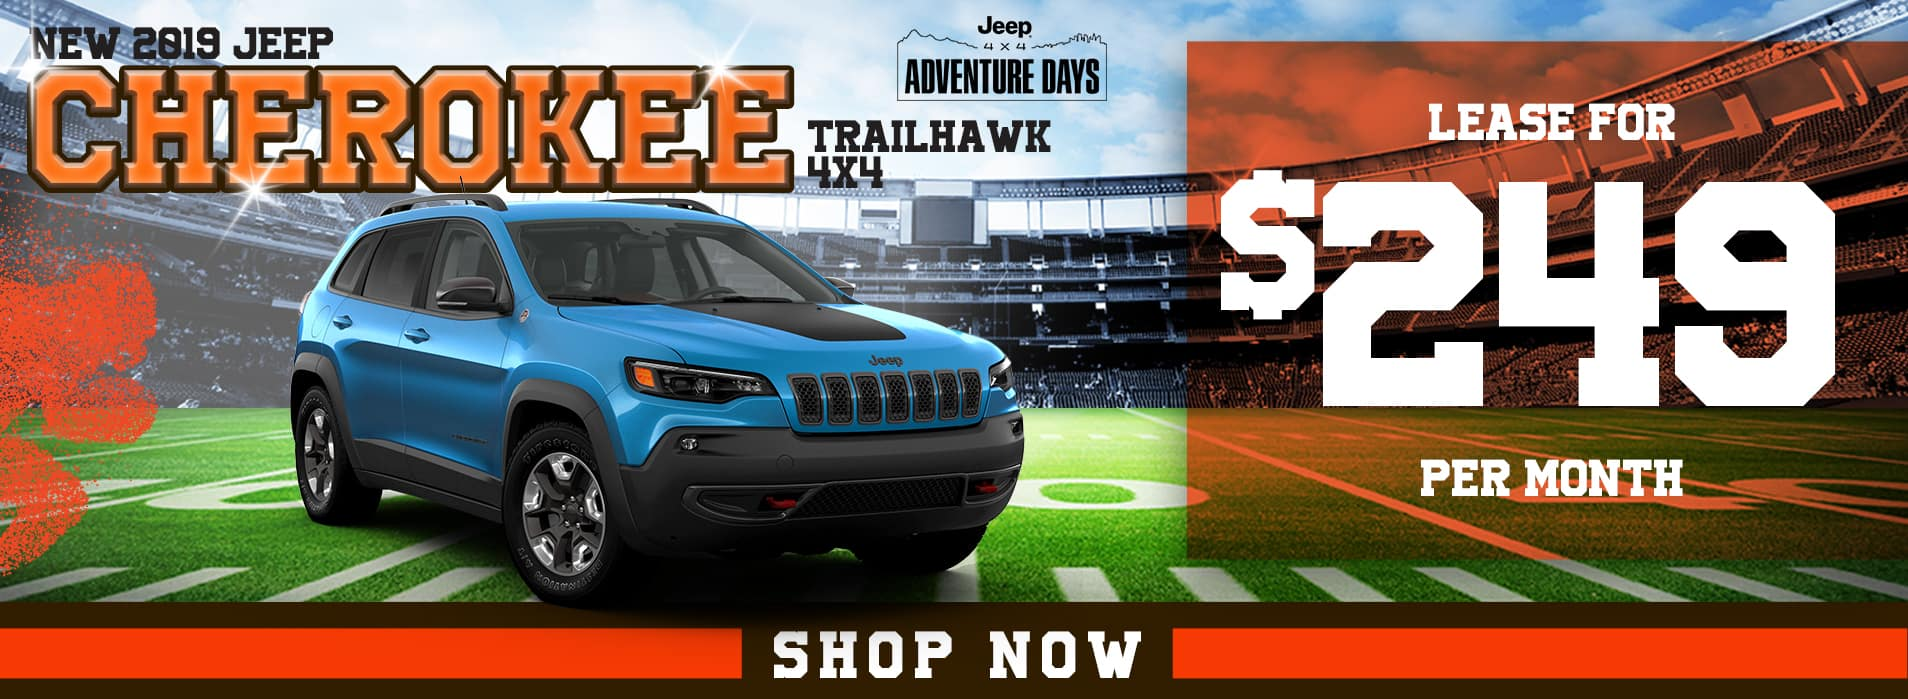 Cherokee   Lease for $249 per month